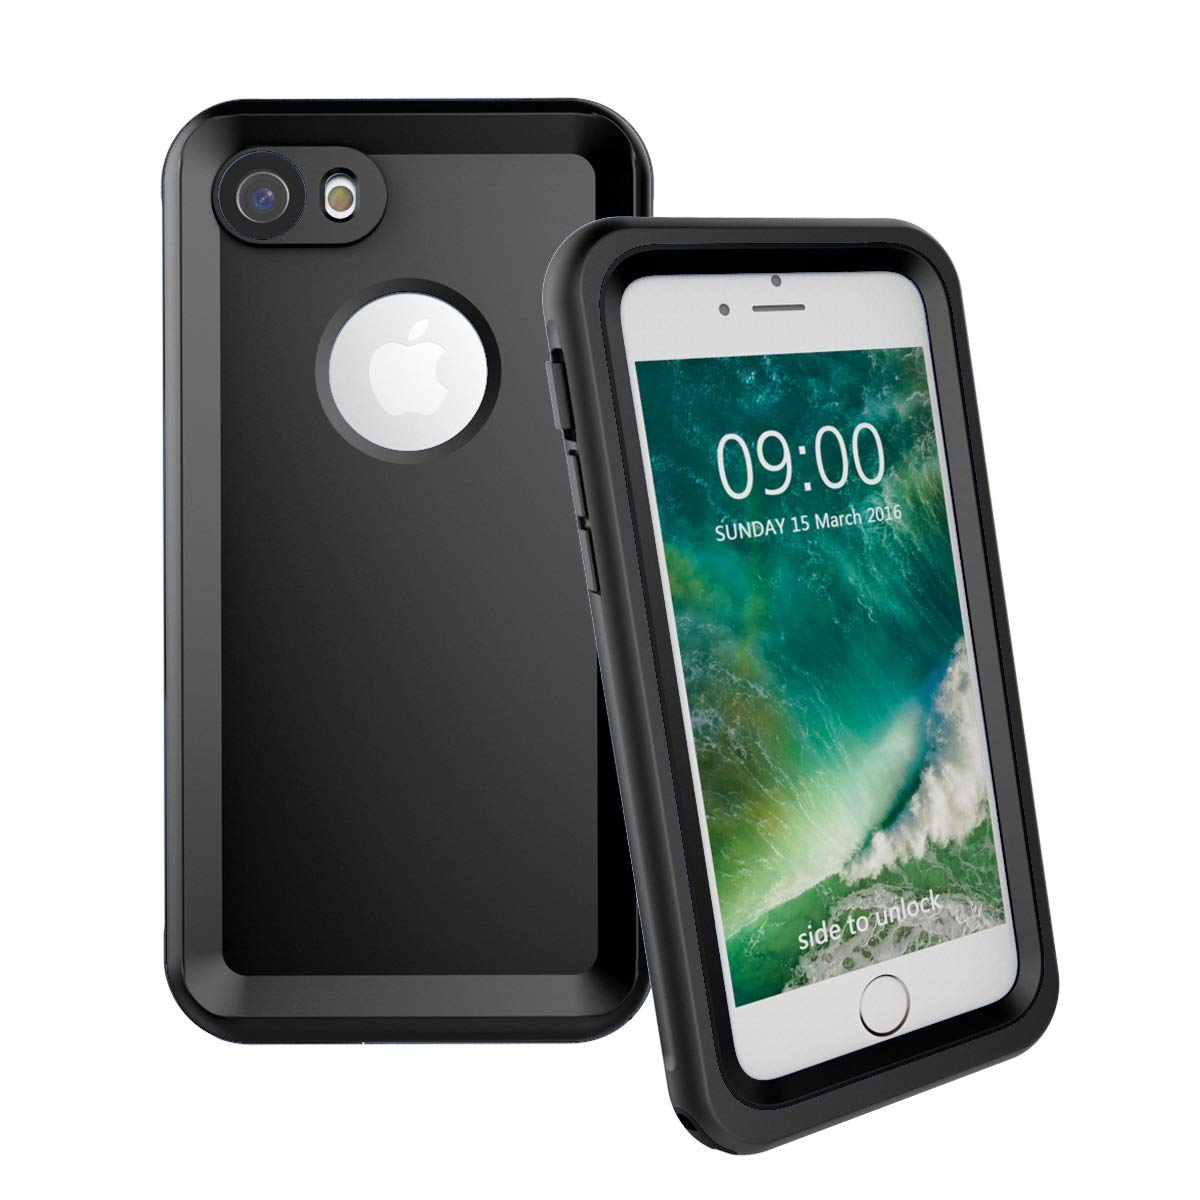 Amazon promo codes for Waterproof Case for iPhone 8